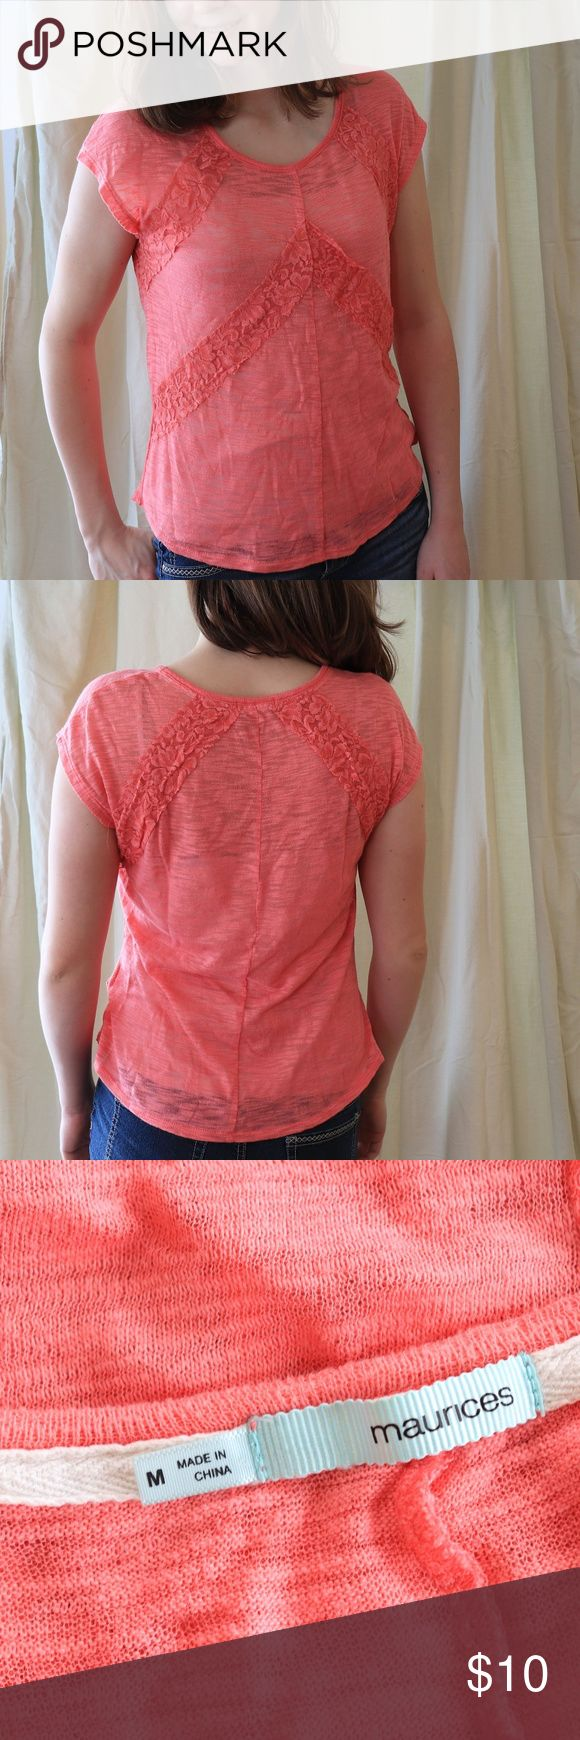 "Maurices Pink/Coral Lace Blouse Hot pink/coral. Transparent but not sheer. Size medium. In good condition. The lace has some elastic strings coming out of it, but they aren't too visible. Very slight pilling. Otherwise, it's in good condition. I'm 5'7"", approx. 135 lbs. and it fits me well. Maurices Tops Blouses"